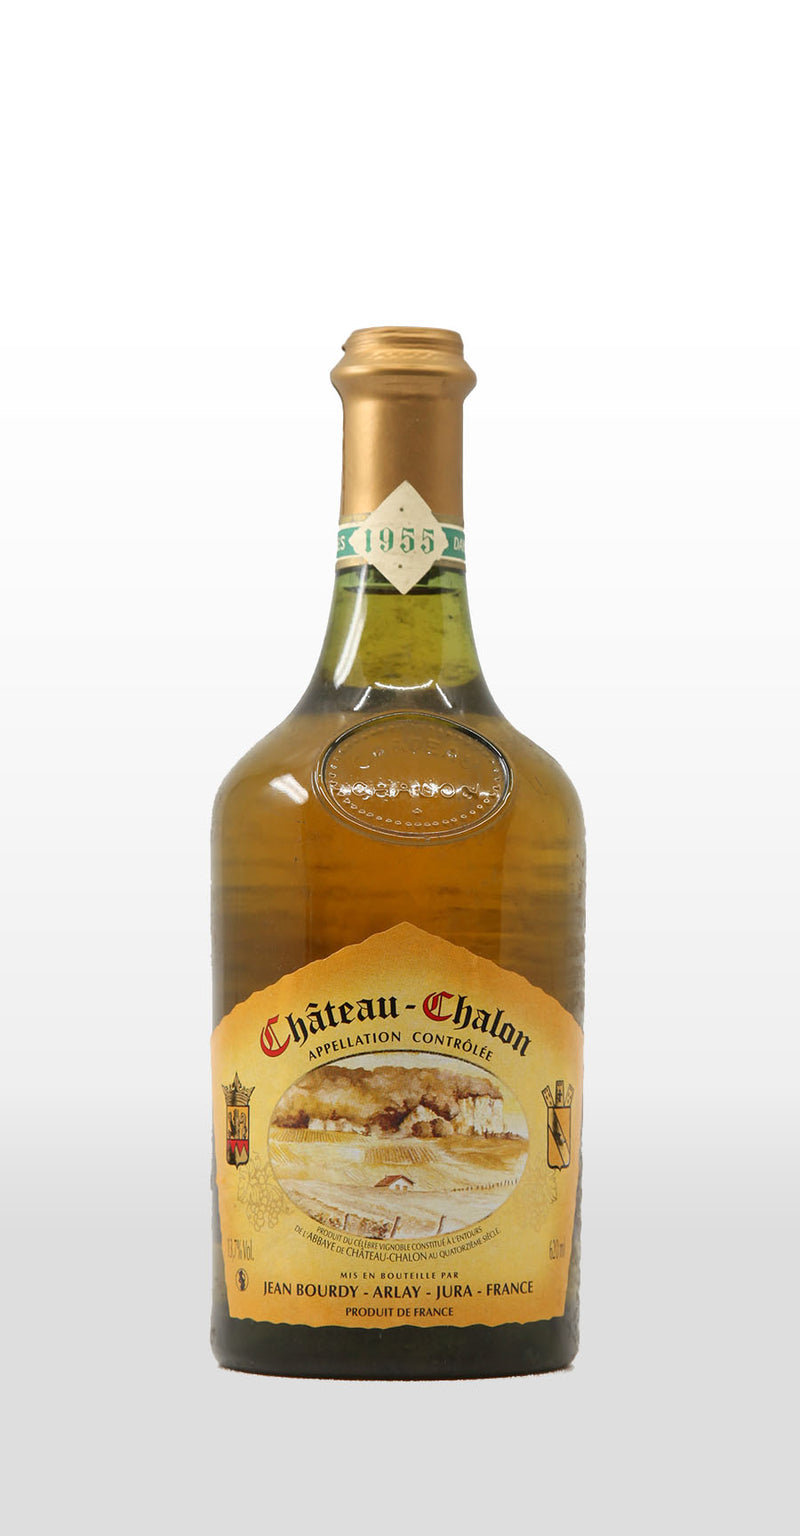 JEAN BOURDY CHATEAU-CHALON 1955 620ML